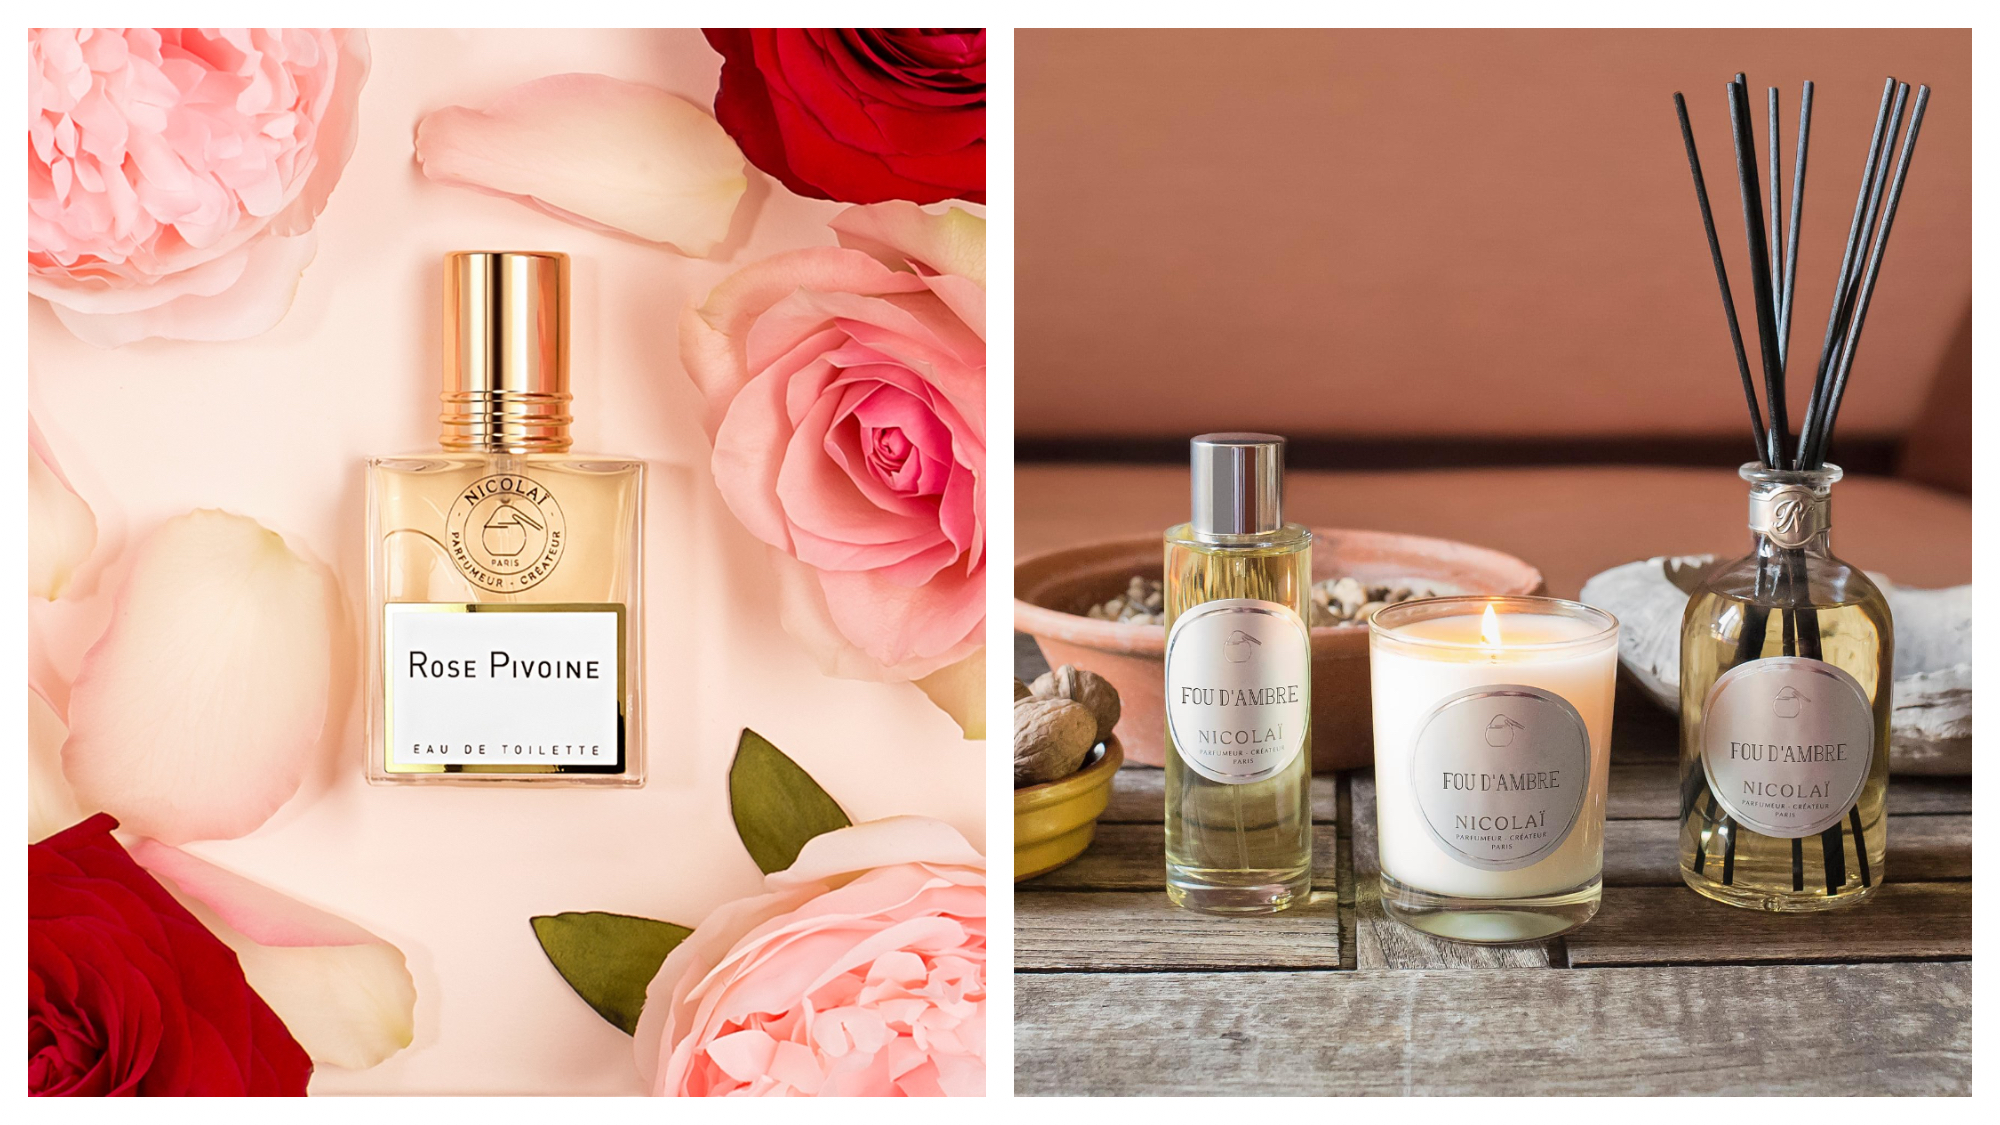 """On left: An elegant bottle of perfume, called """"rose pivoine,"""" lays surrounded by pink peonies and roses. It is a scent created by Nicolaï, a 30-year old perfumery founded by the great-granddaughter of Pierre Guerlain. On right: A trio of perfume, a candle, and a diffuser in the scent """"Fou d'Ambre"""" were created by the perfumery Nicolaï, whose laboratory is located on the rue de Richelieu in Paris."""